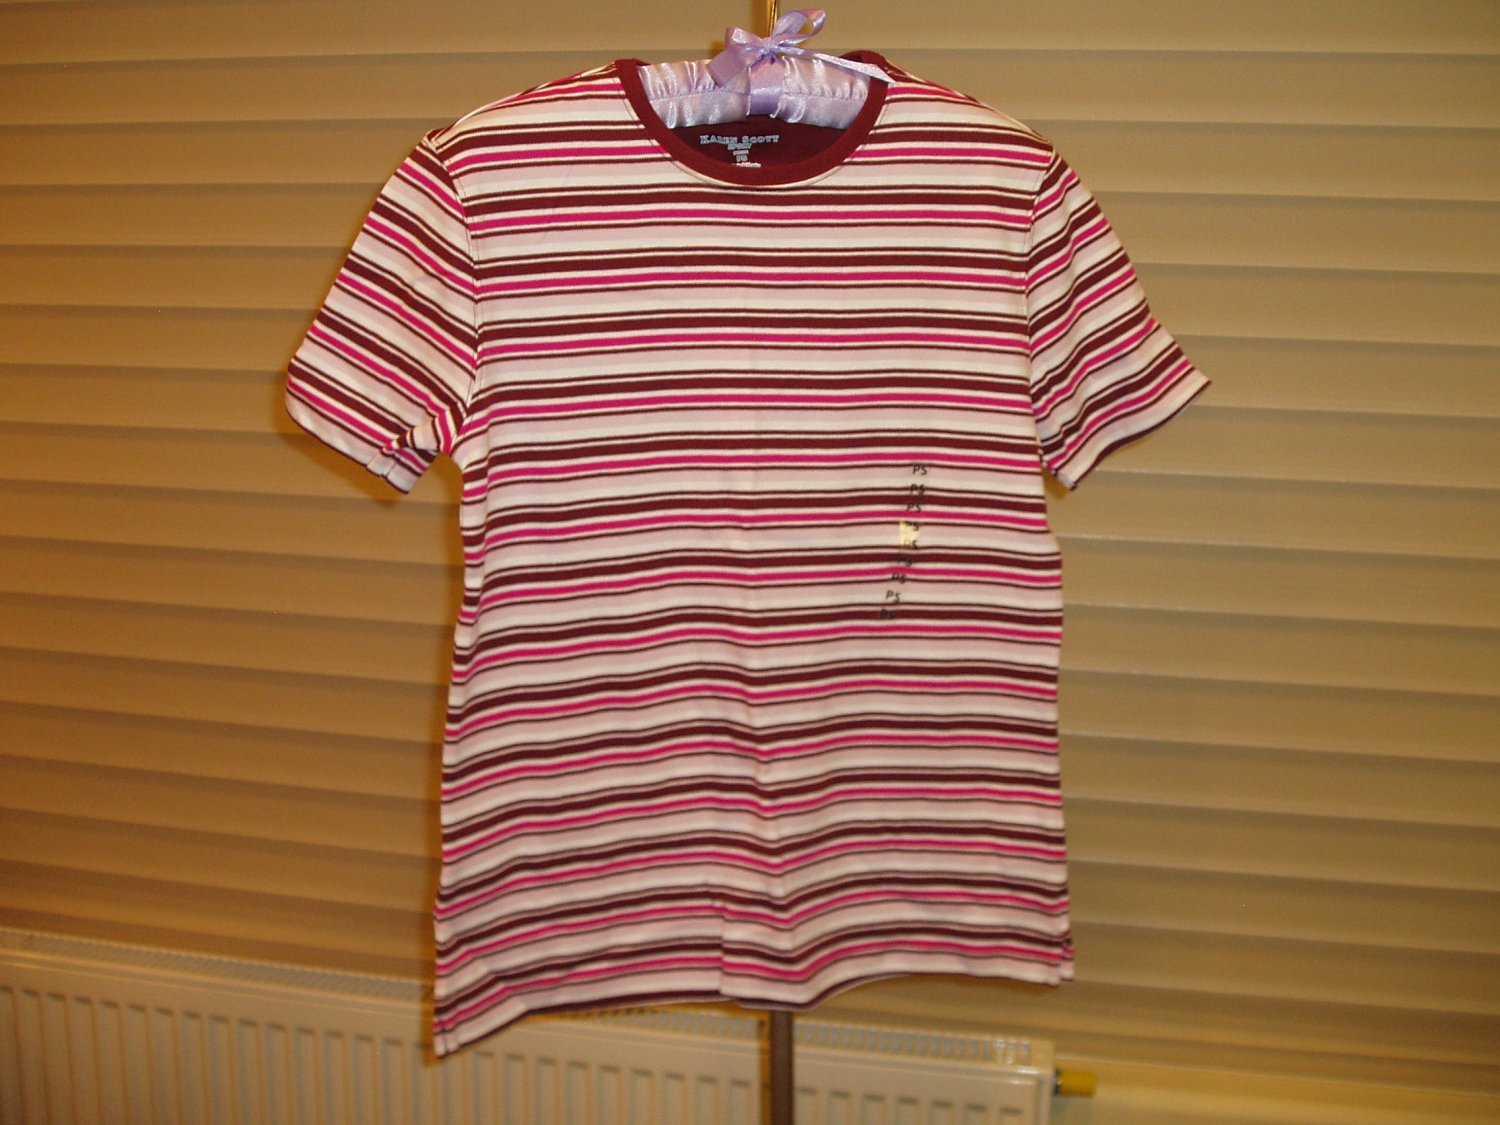 Multi-colored Karen Scott Sport T-shirt with stripes, size Petite Small, PS